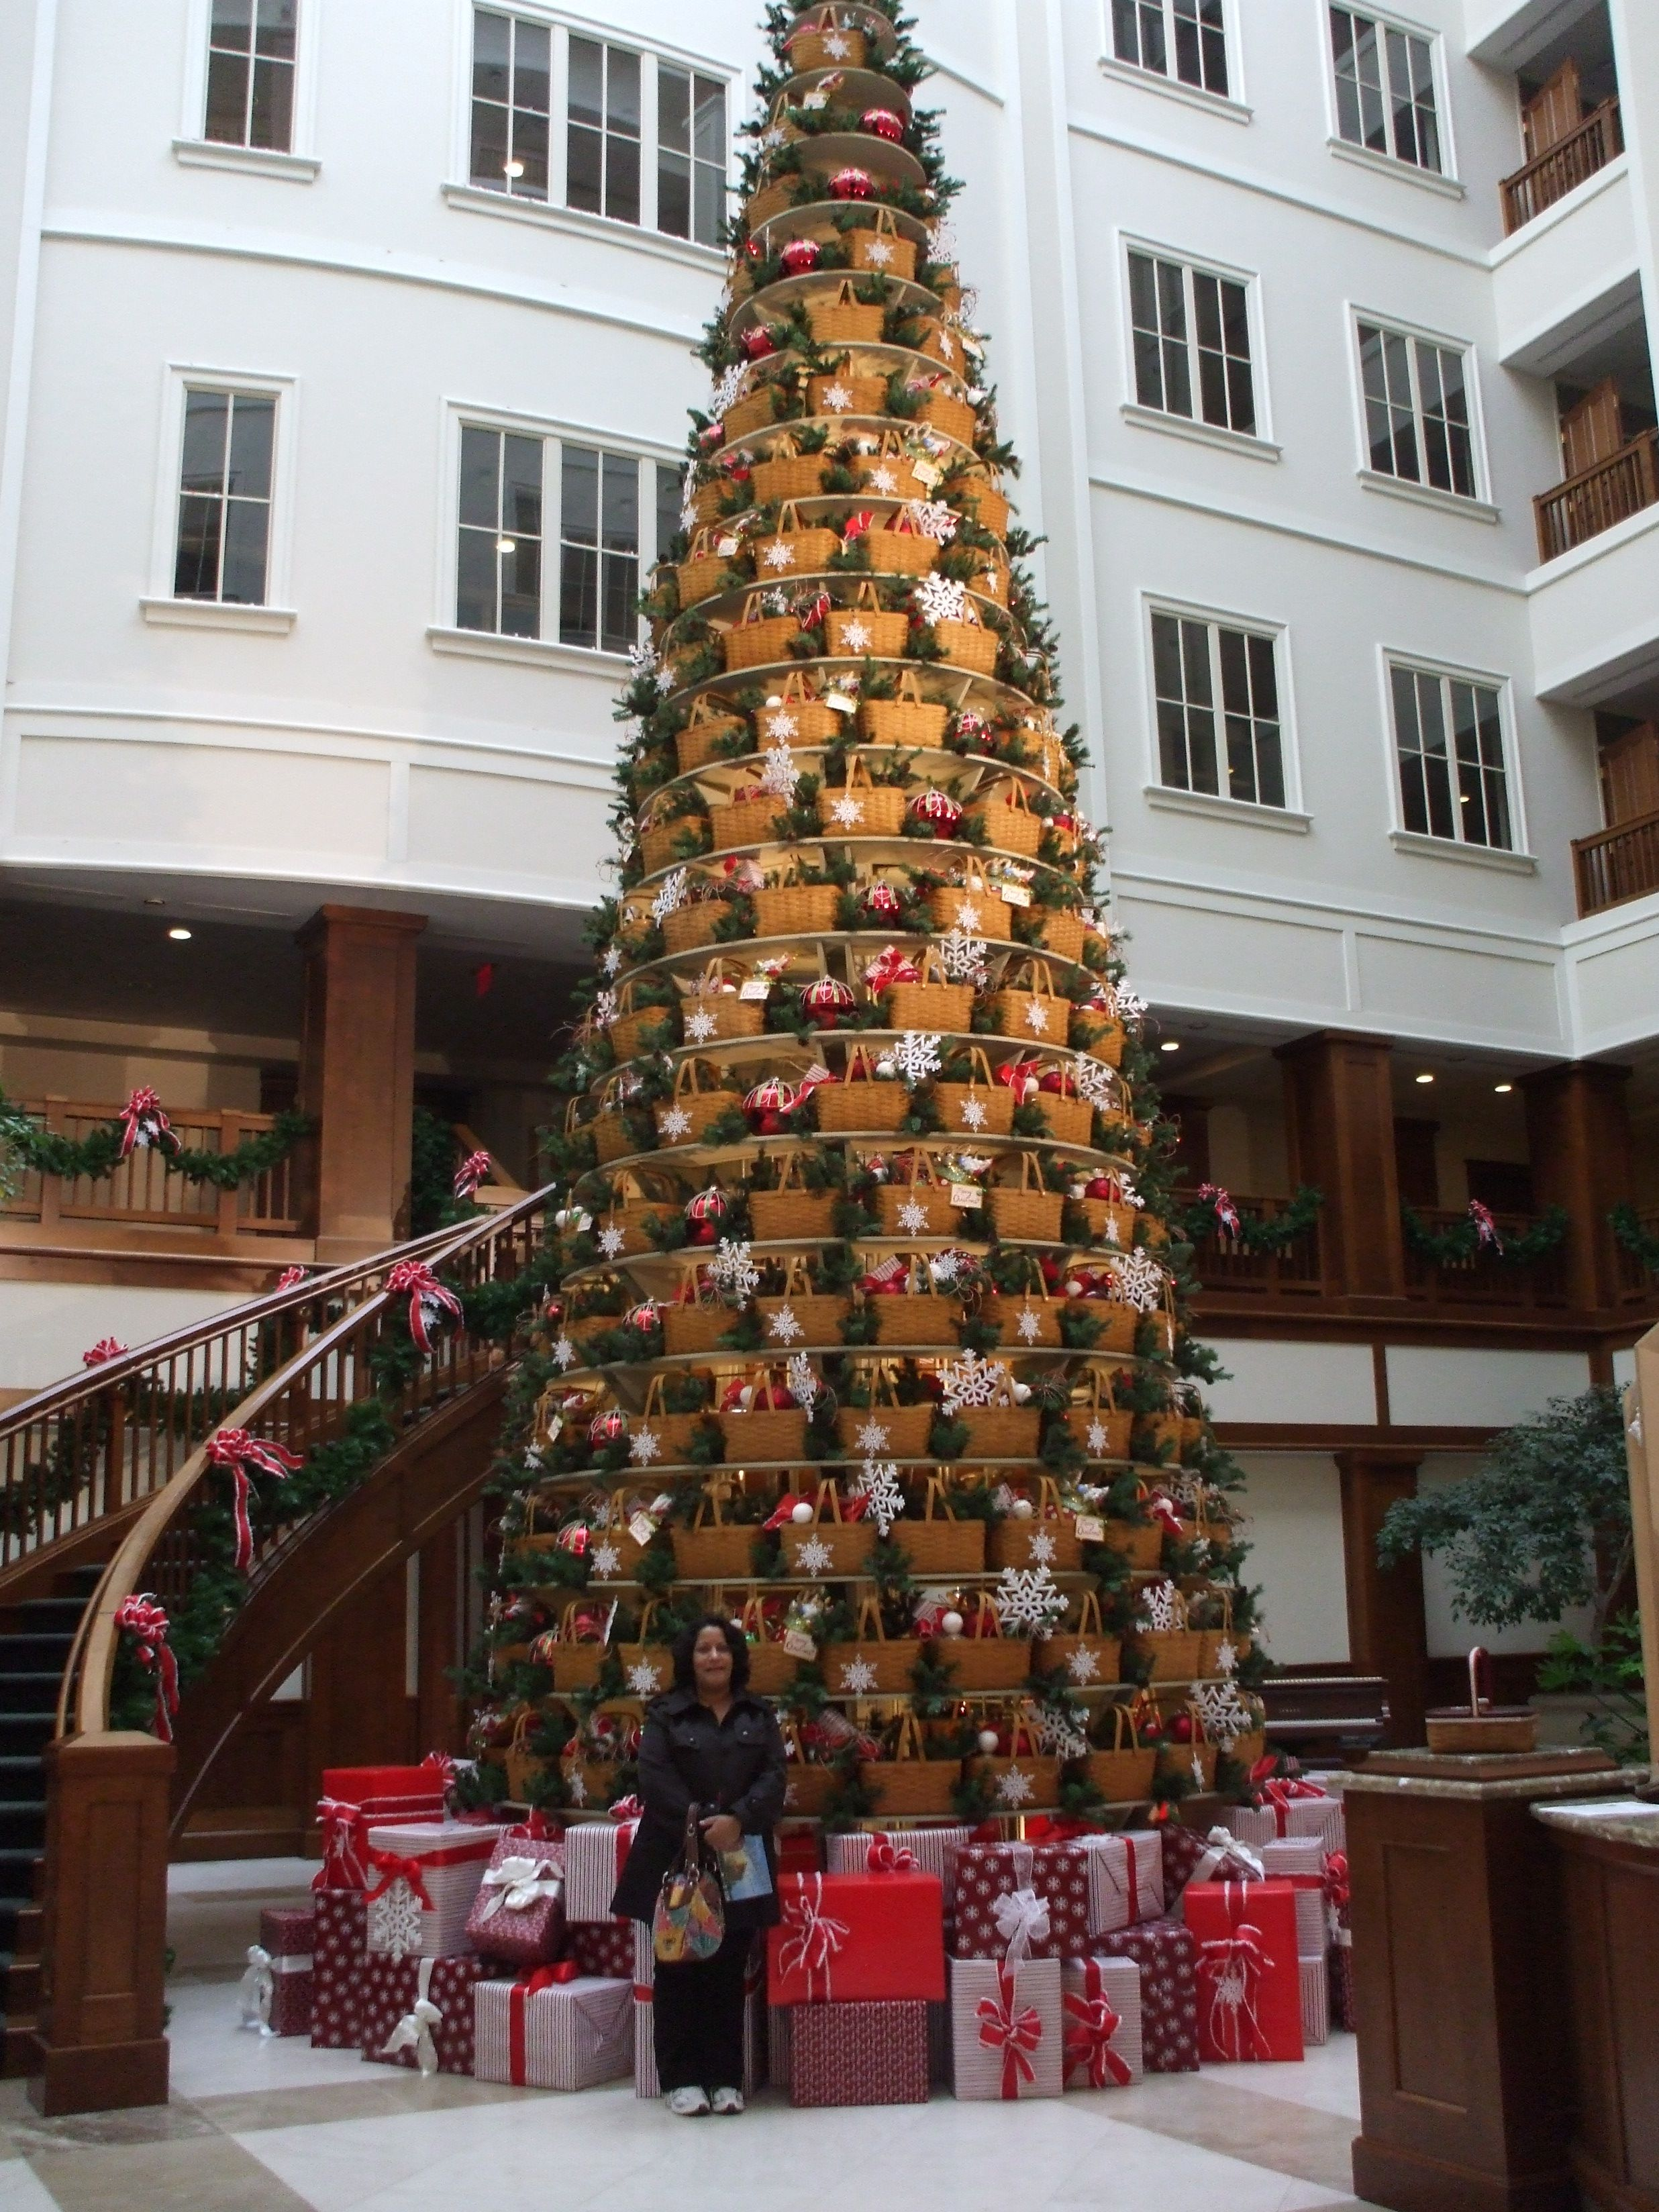 Charmant Longaberger Home Office Lobby In Newark, Ohio At Christmas Time.